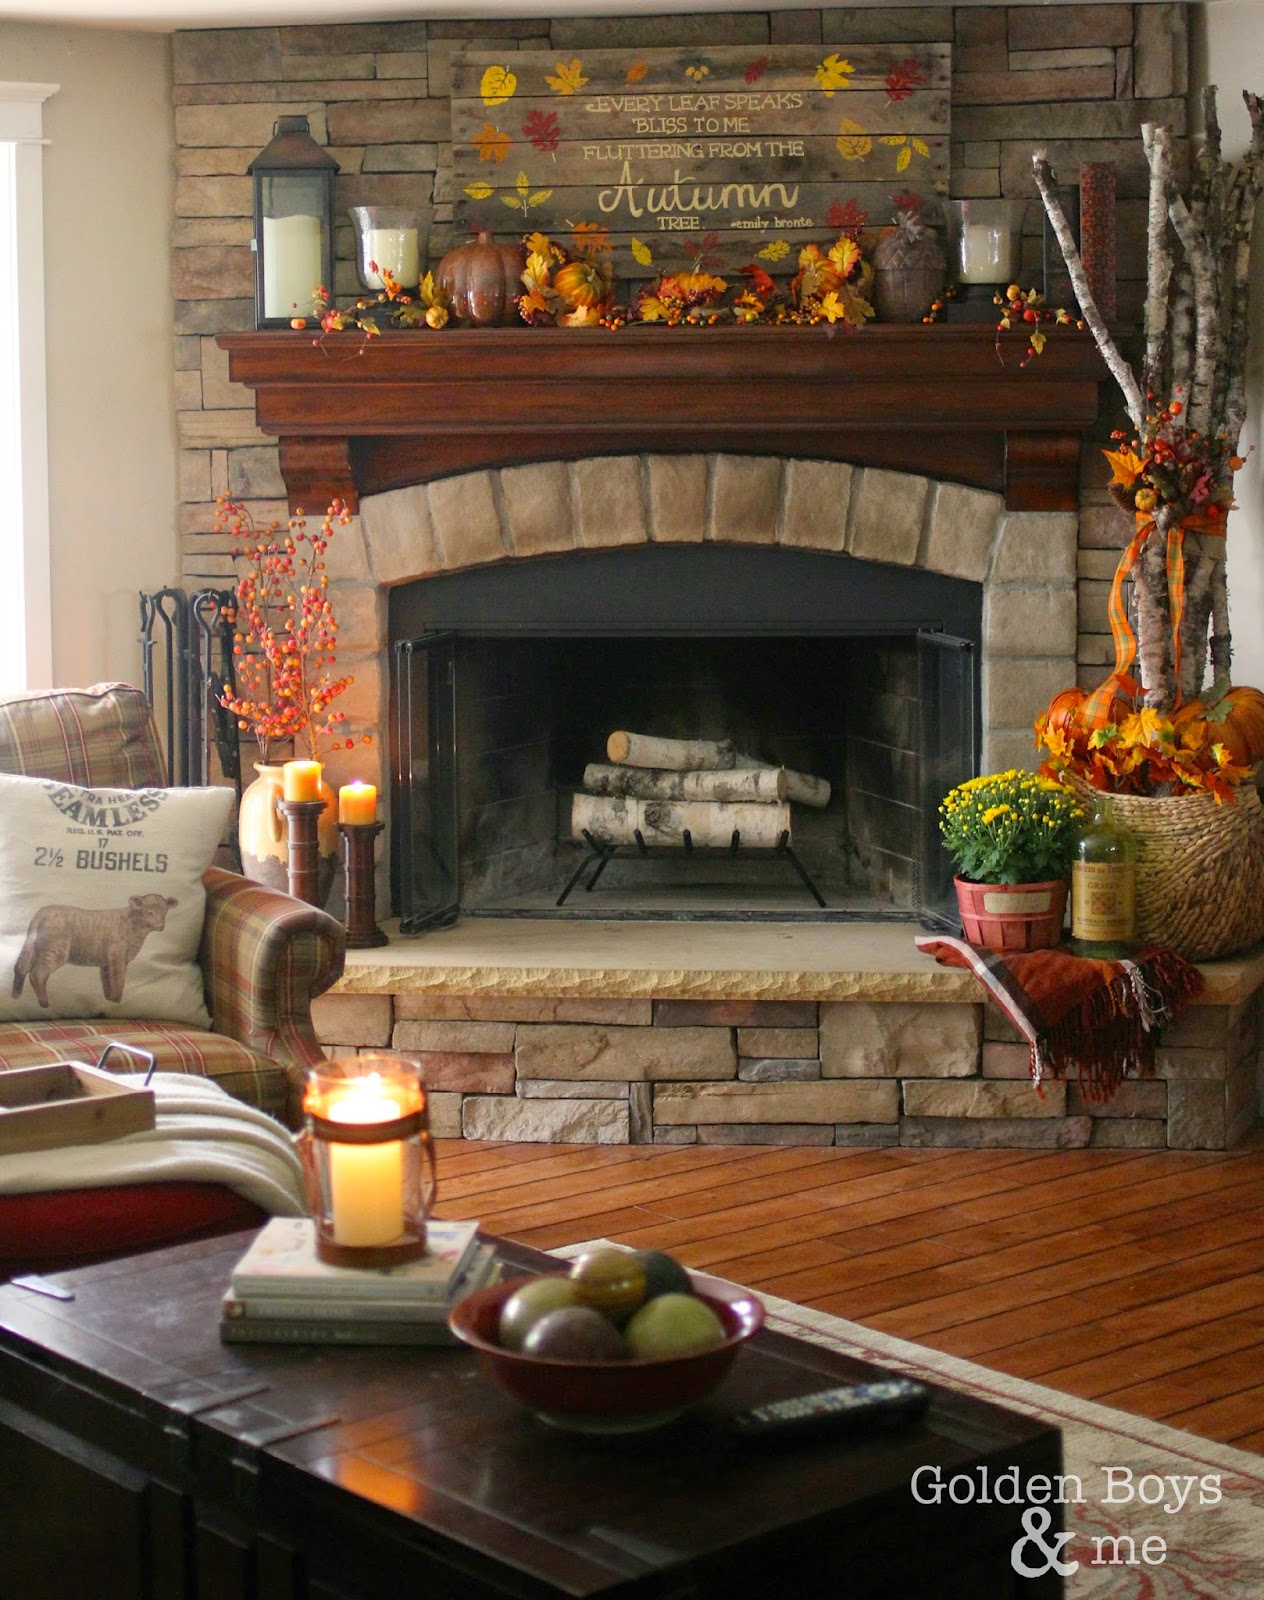 Stone corner fireplace decorated for fall with diy fall pallet sign-www.goldenboysandme.com